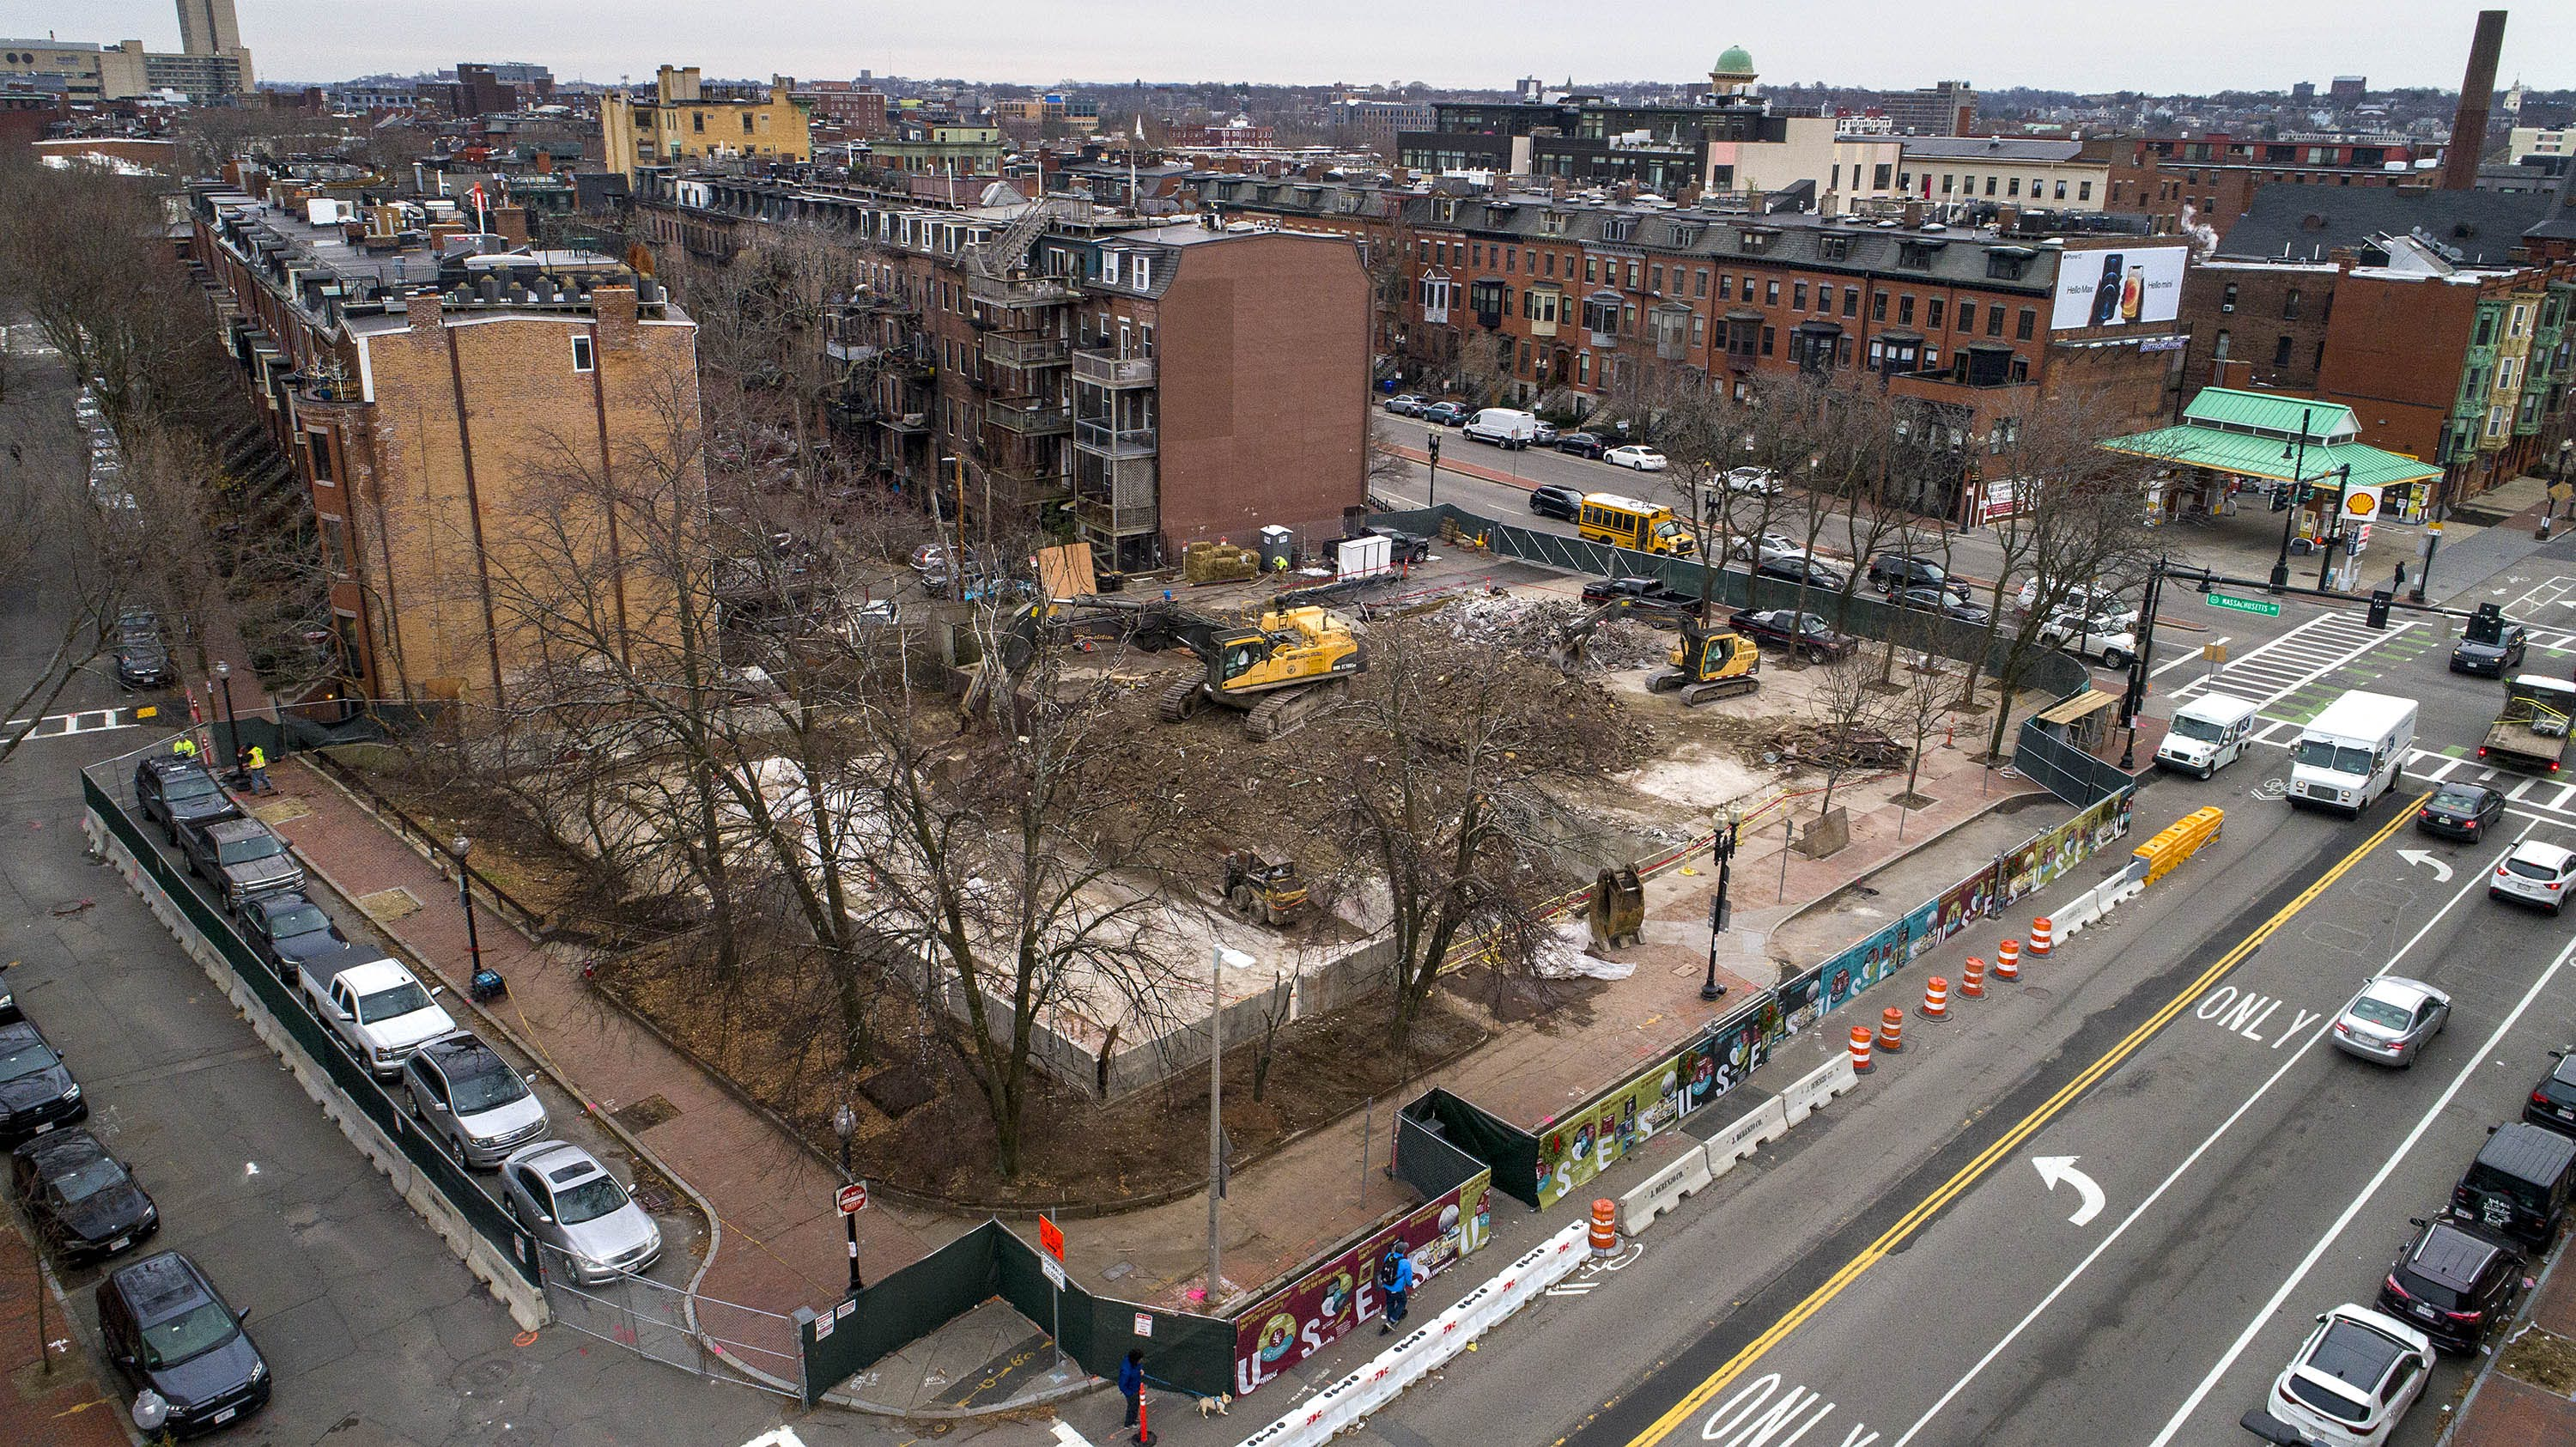 The site of the Harriet Tubman House at 566 Columbus Avenue, which is now under development. (Robin Lubbock/WBUR)